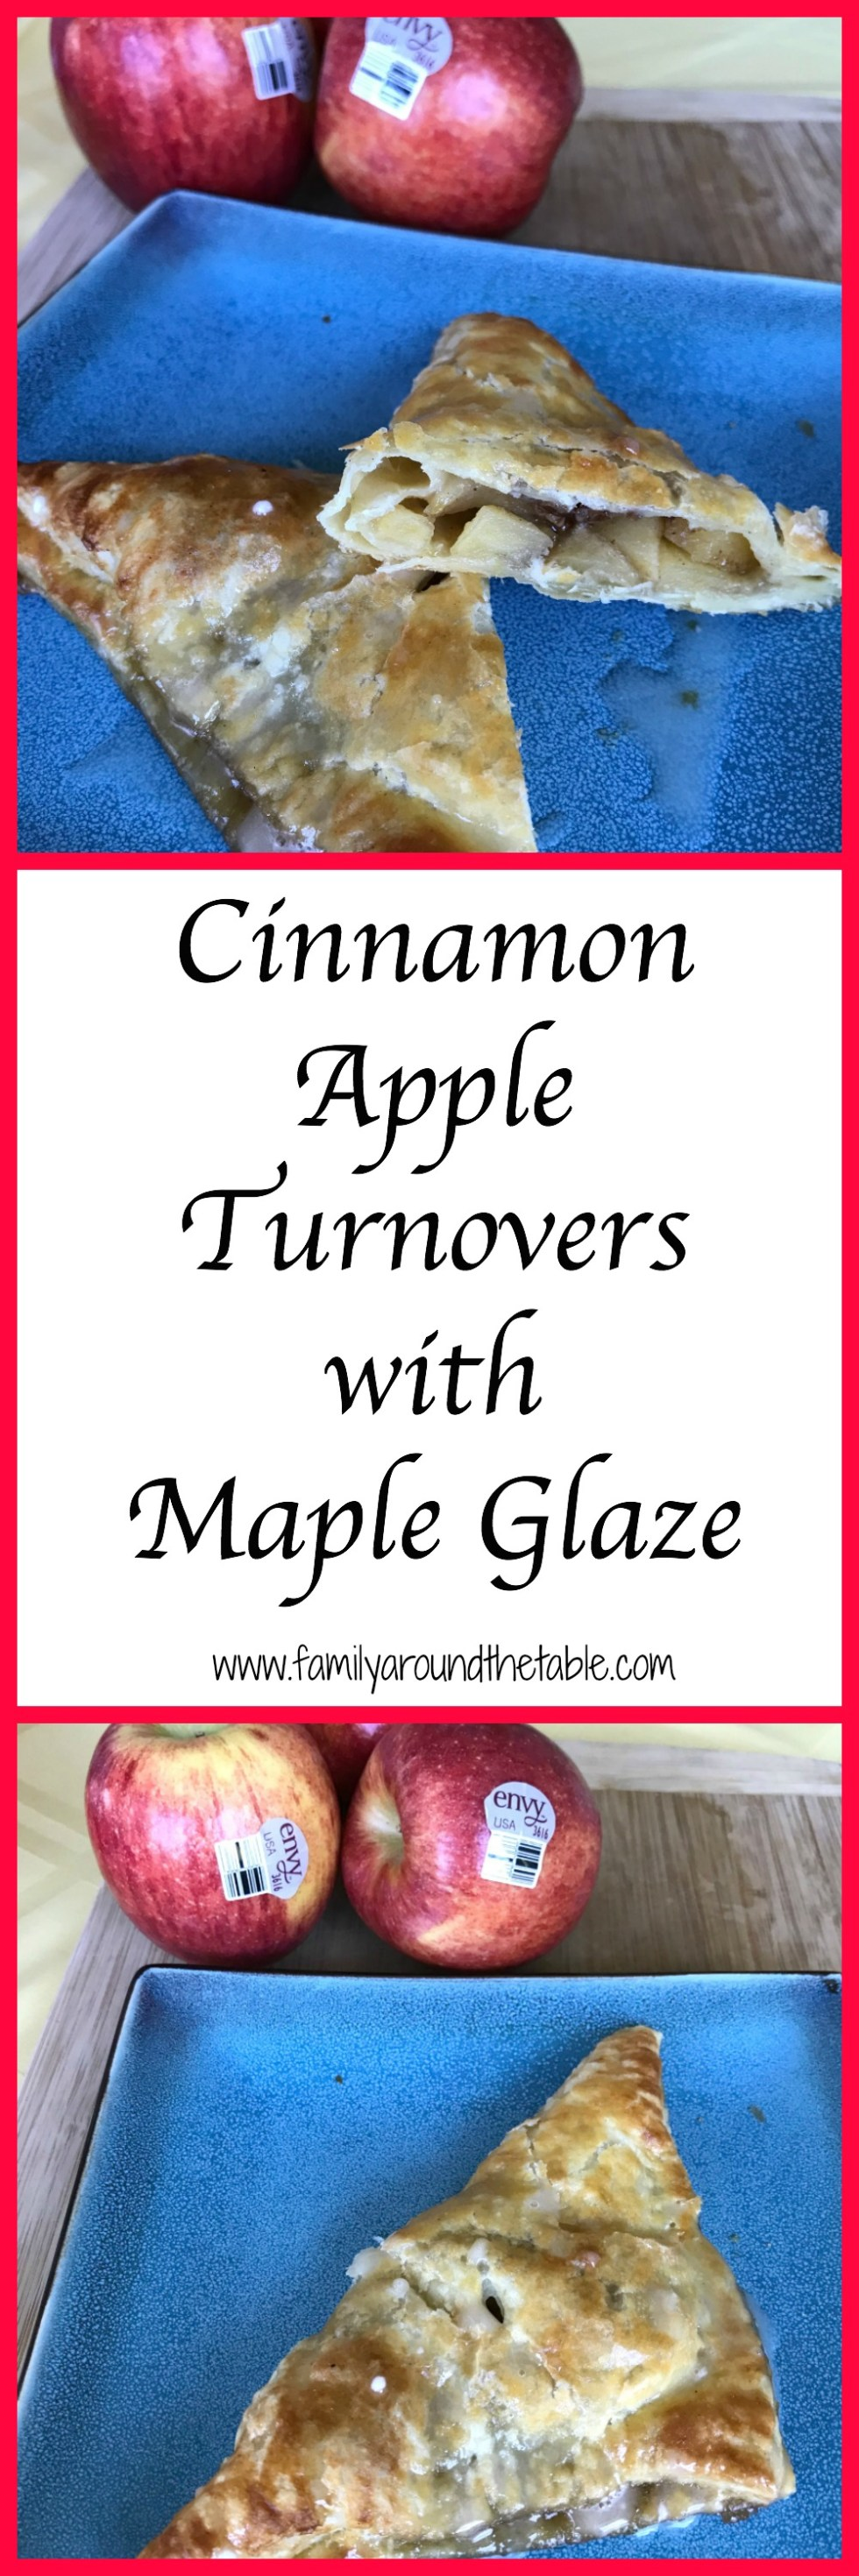 Light and flaky cinnamon apple turnovers with maple glaze are a delicious dessert for any occasion.